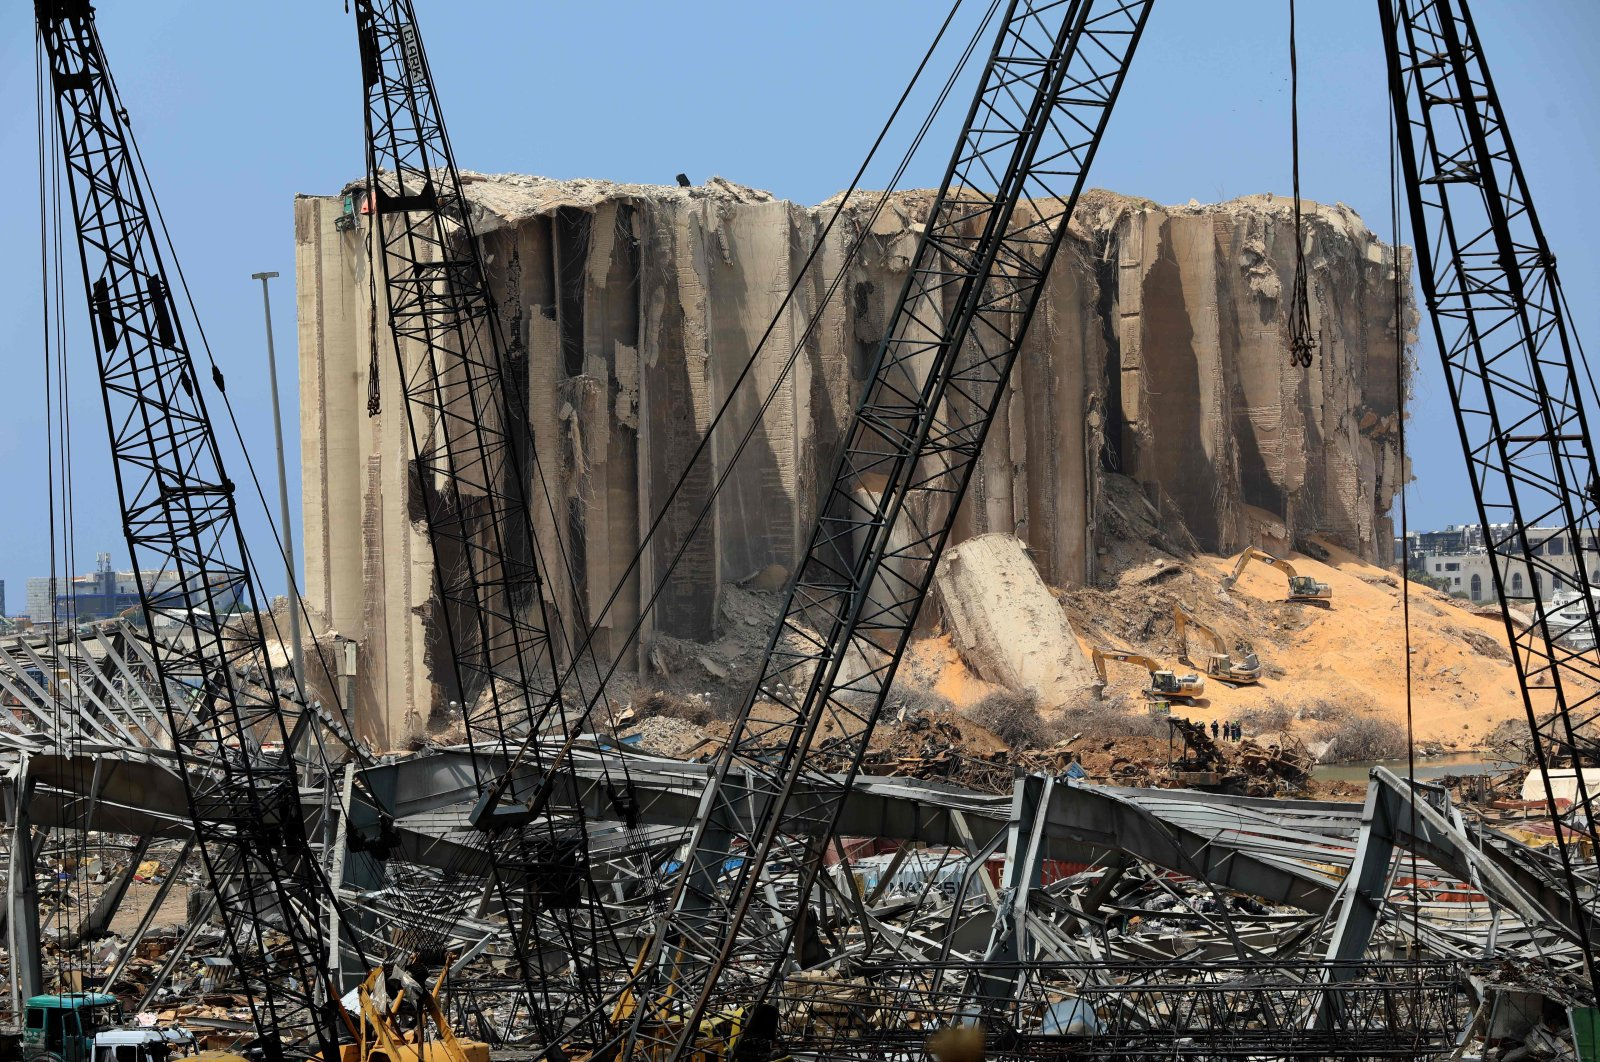 Rescuers use excavators to clear the rubble at the site of damaged grain silos at the Port of Beirut, Lebanon, Aug. 12, 2020. (AFP Photo)